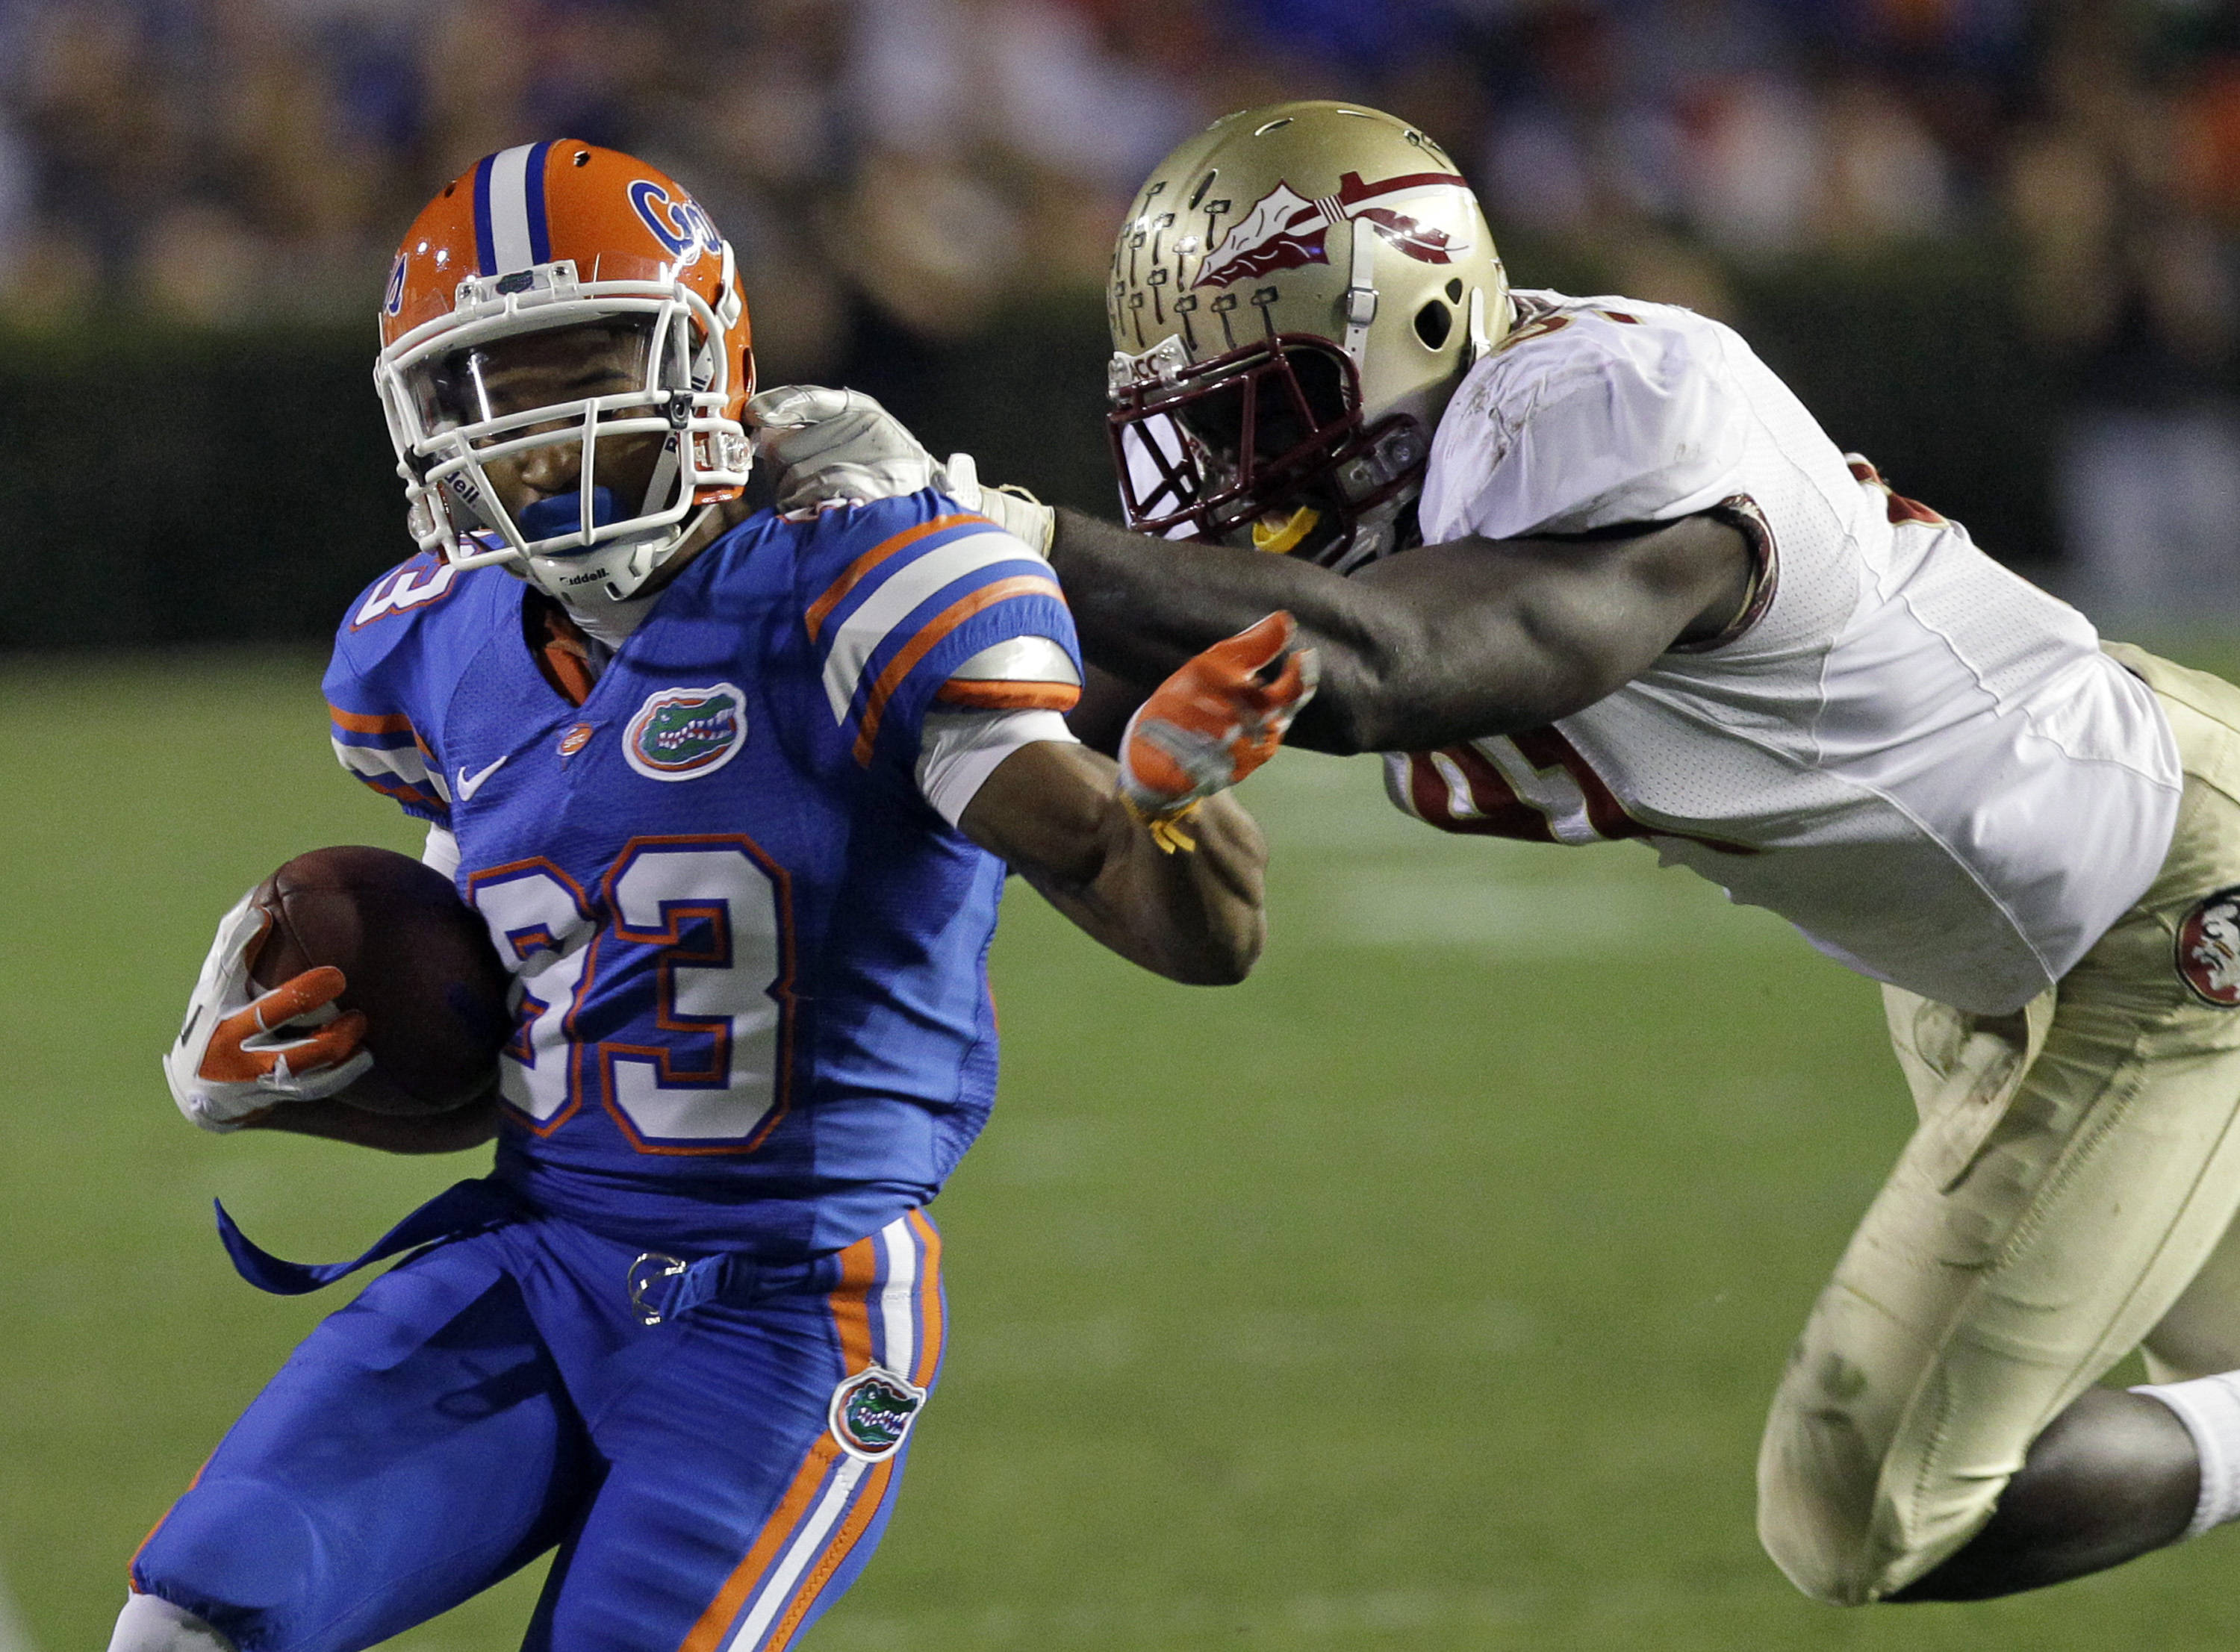 Florida wide receiver Solomon Patton (83) is tackled by Florida State defensive end Cornellius Carradine, right,  after a reception during the first half of an NCAA college football game on Saturday, Nov. 26, 2011, in Gainesville, Fla. (AP Photo/John Raoux)